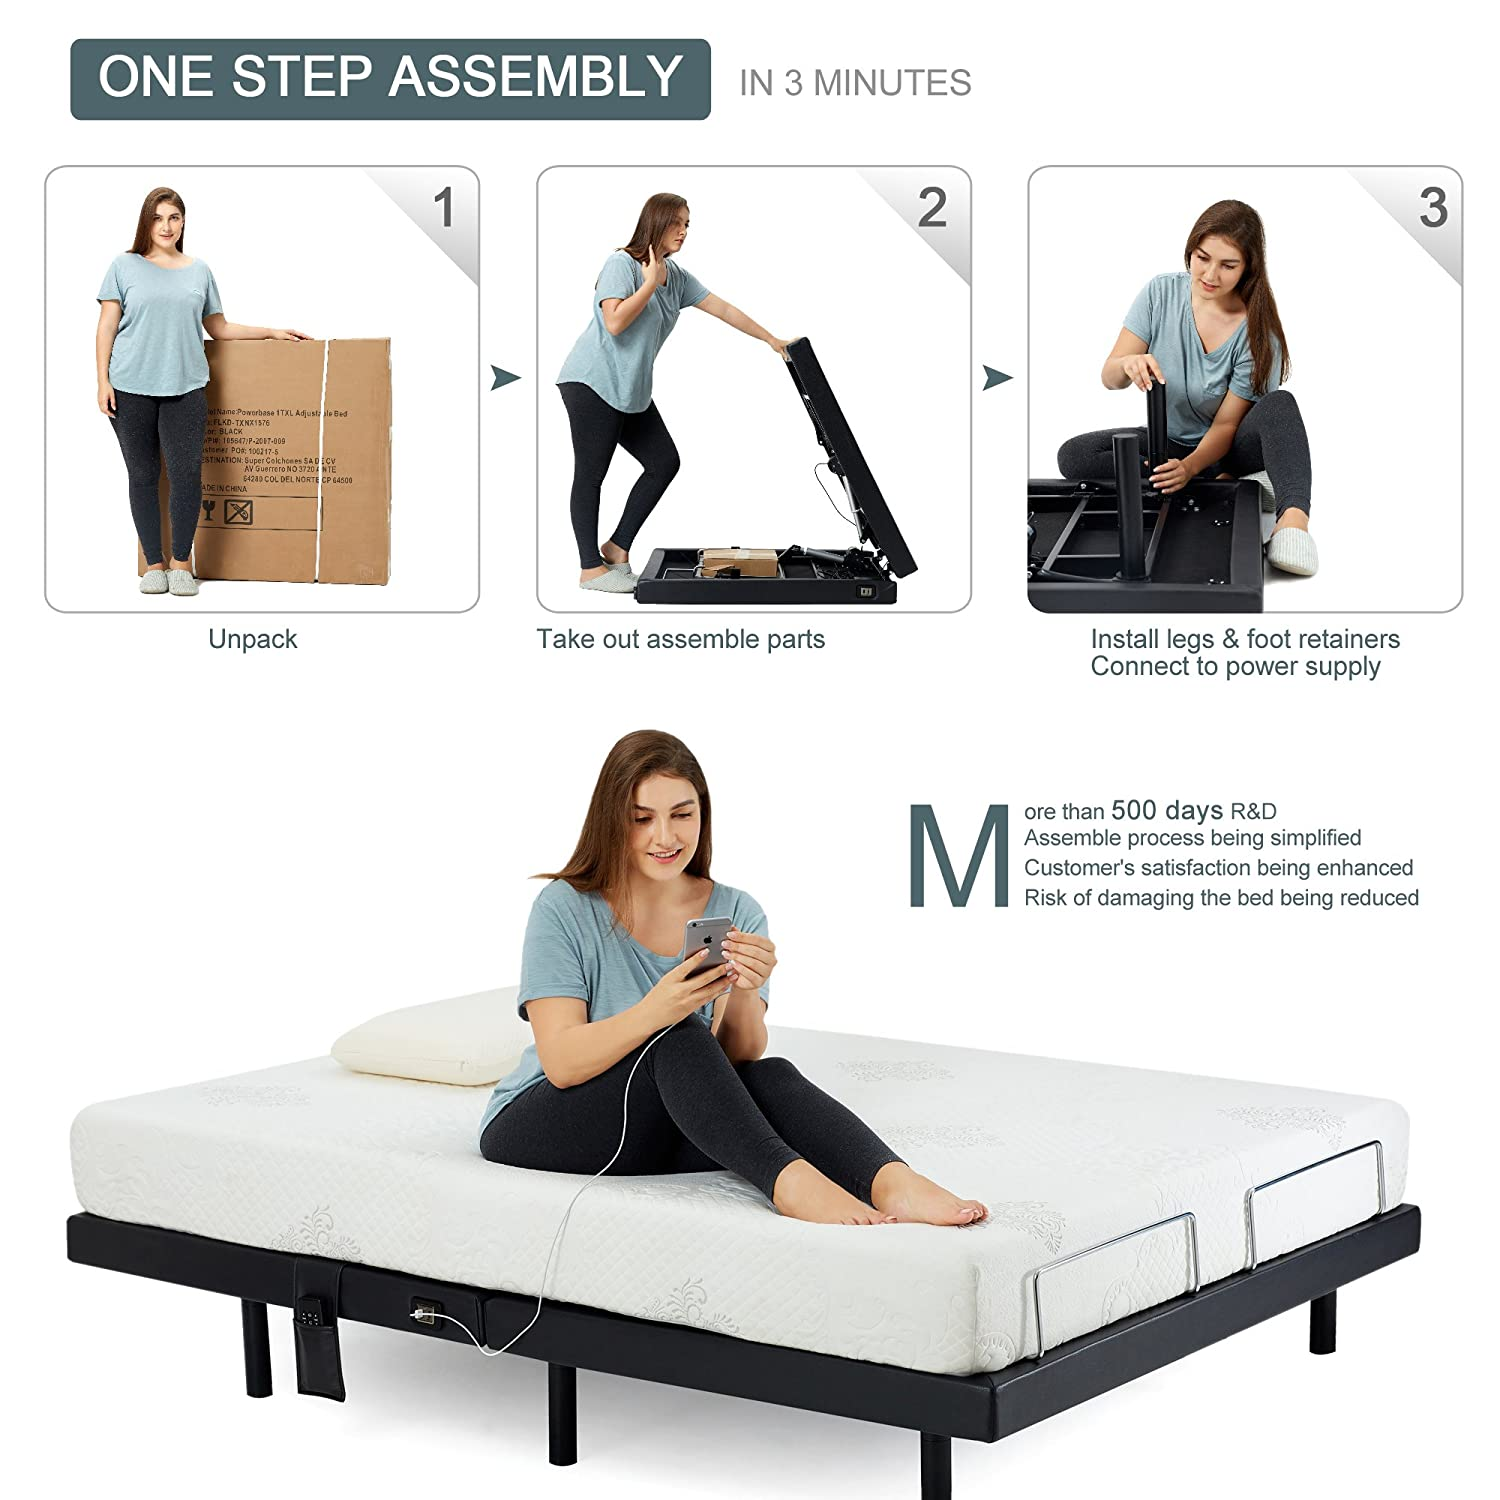 HOFISH 2I Solid Wood Slat Adjustable Bed Frame - One-Step Assembly Customizable Positions Twin XL Adjustable Bed Base with Backlit Wireless Remote, ...